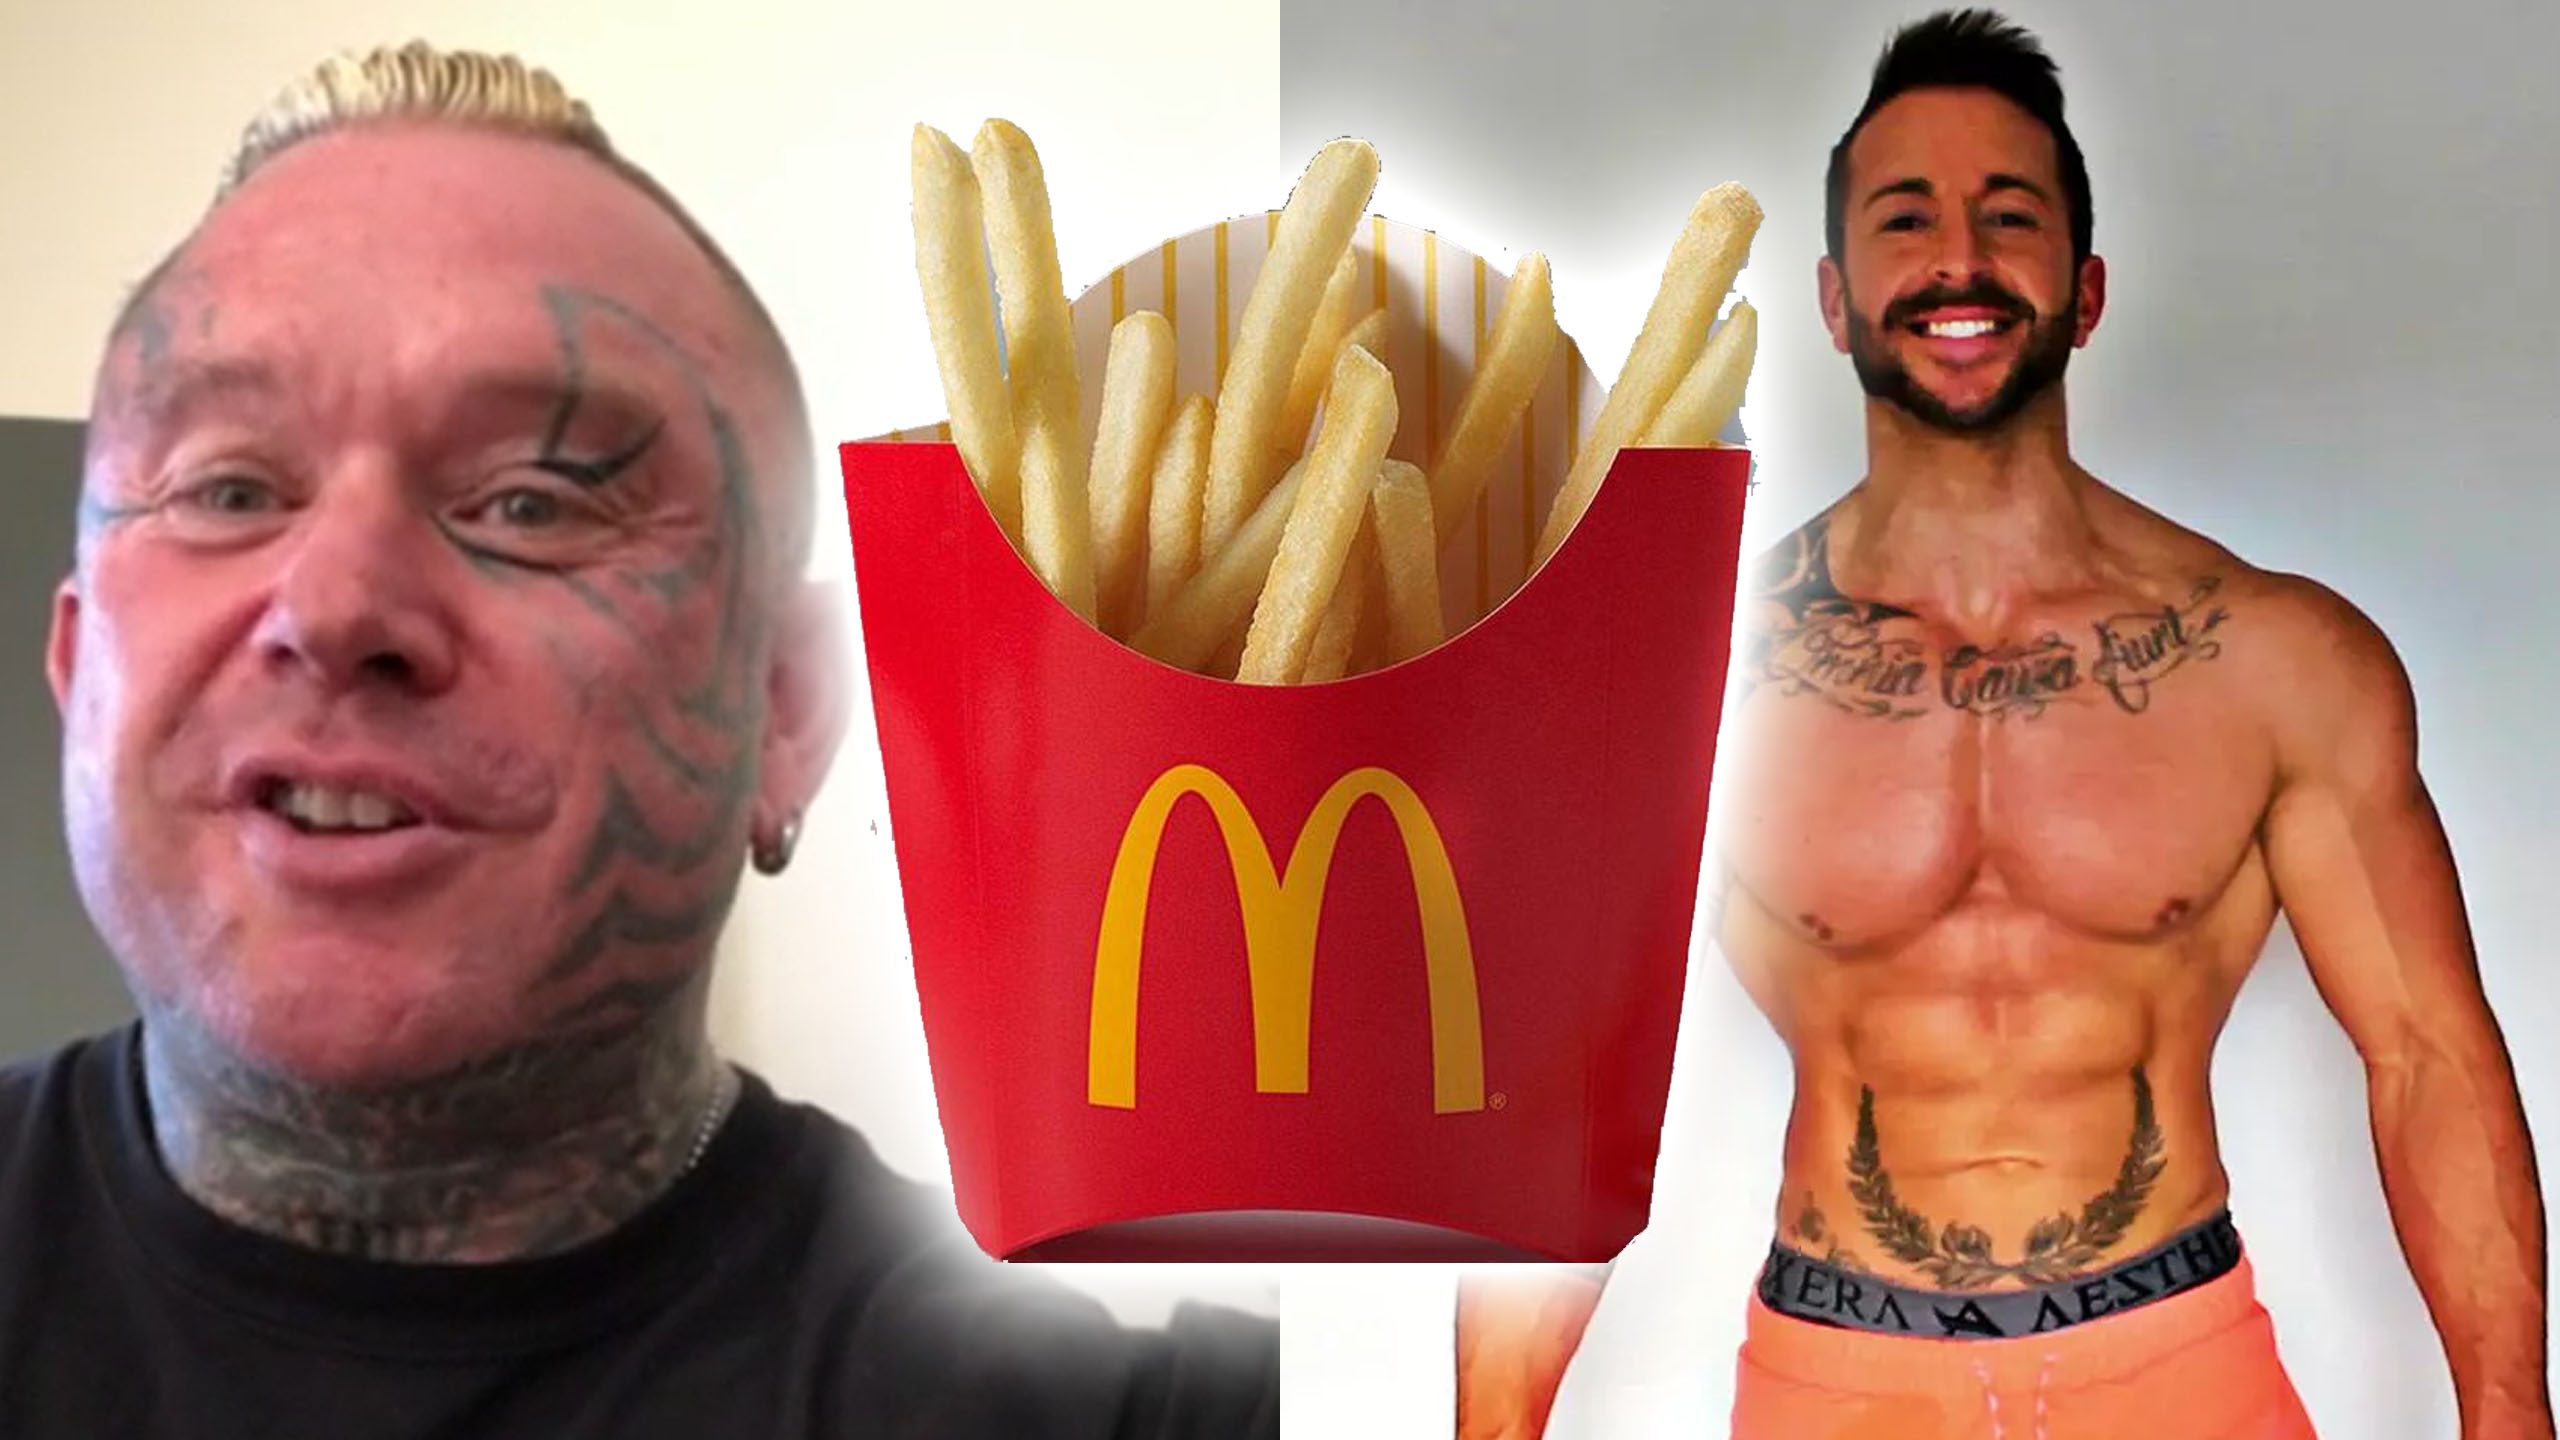 mcdonalds diet iron rage